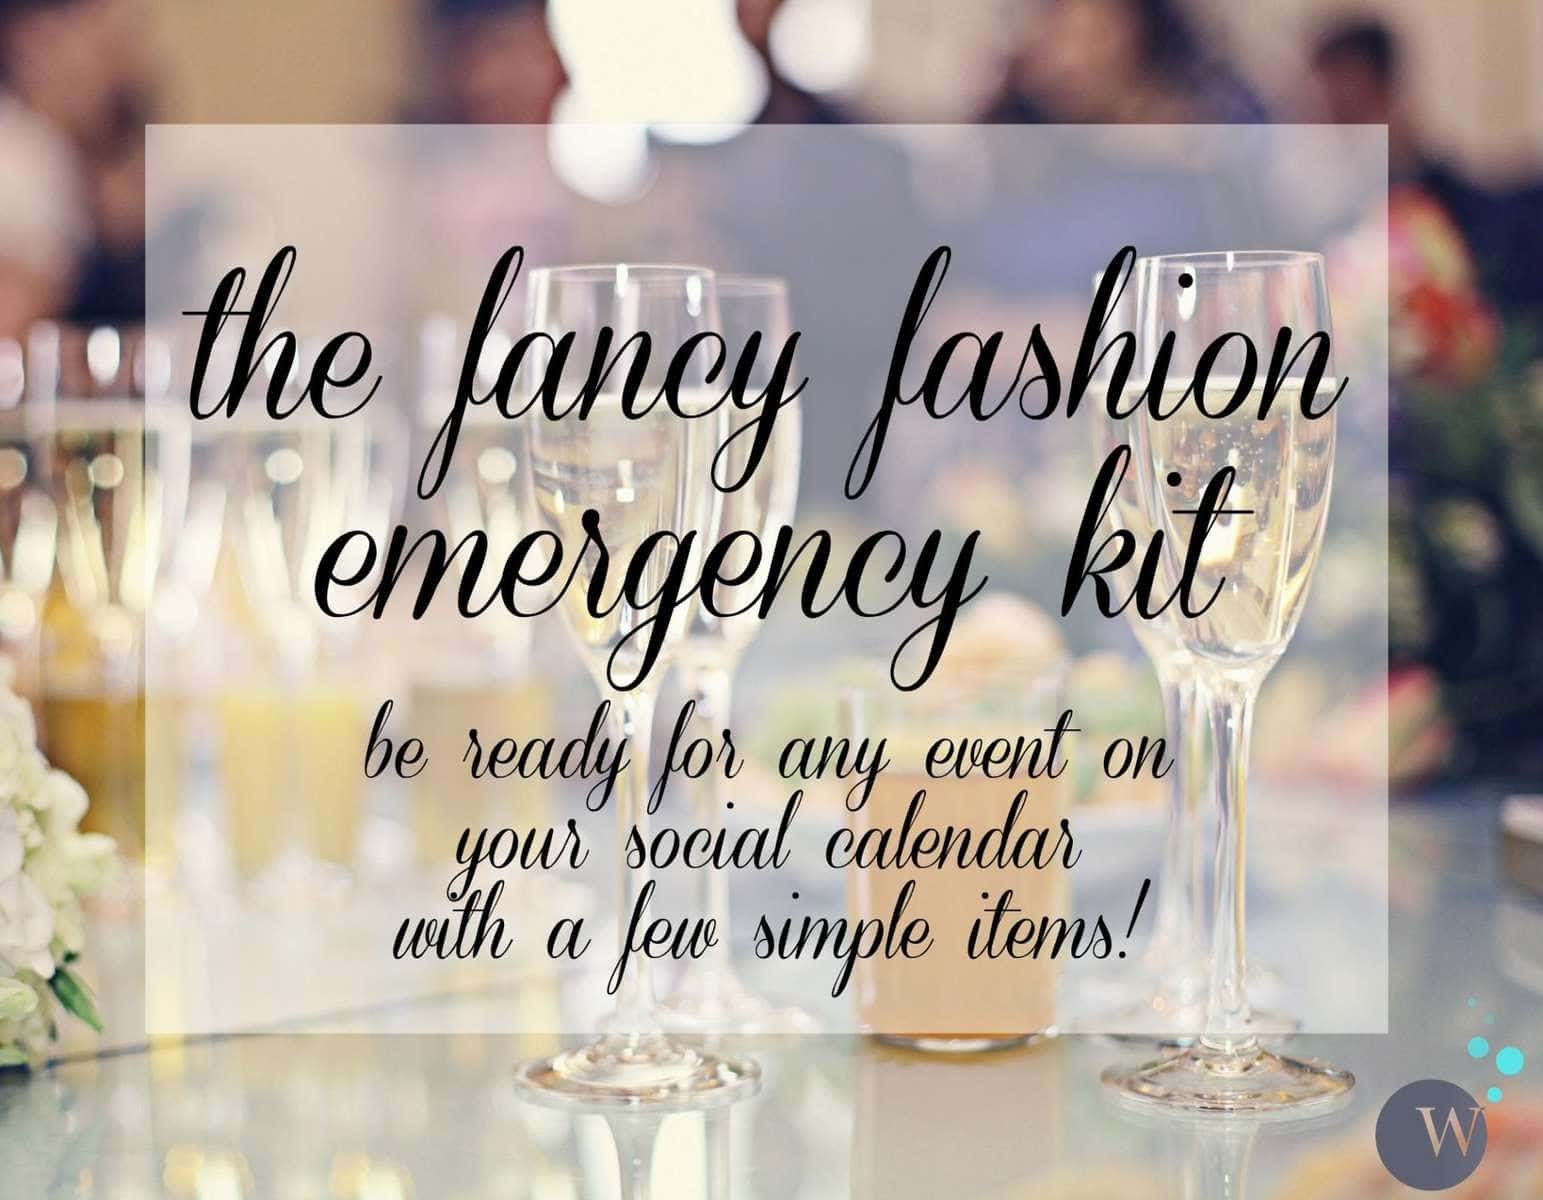 The Fancy Fashion Emergency Kit: Be ready for any event on your social calendar with a few simple wardrobe items!